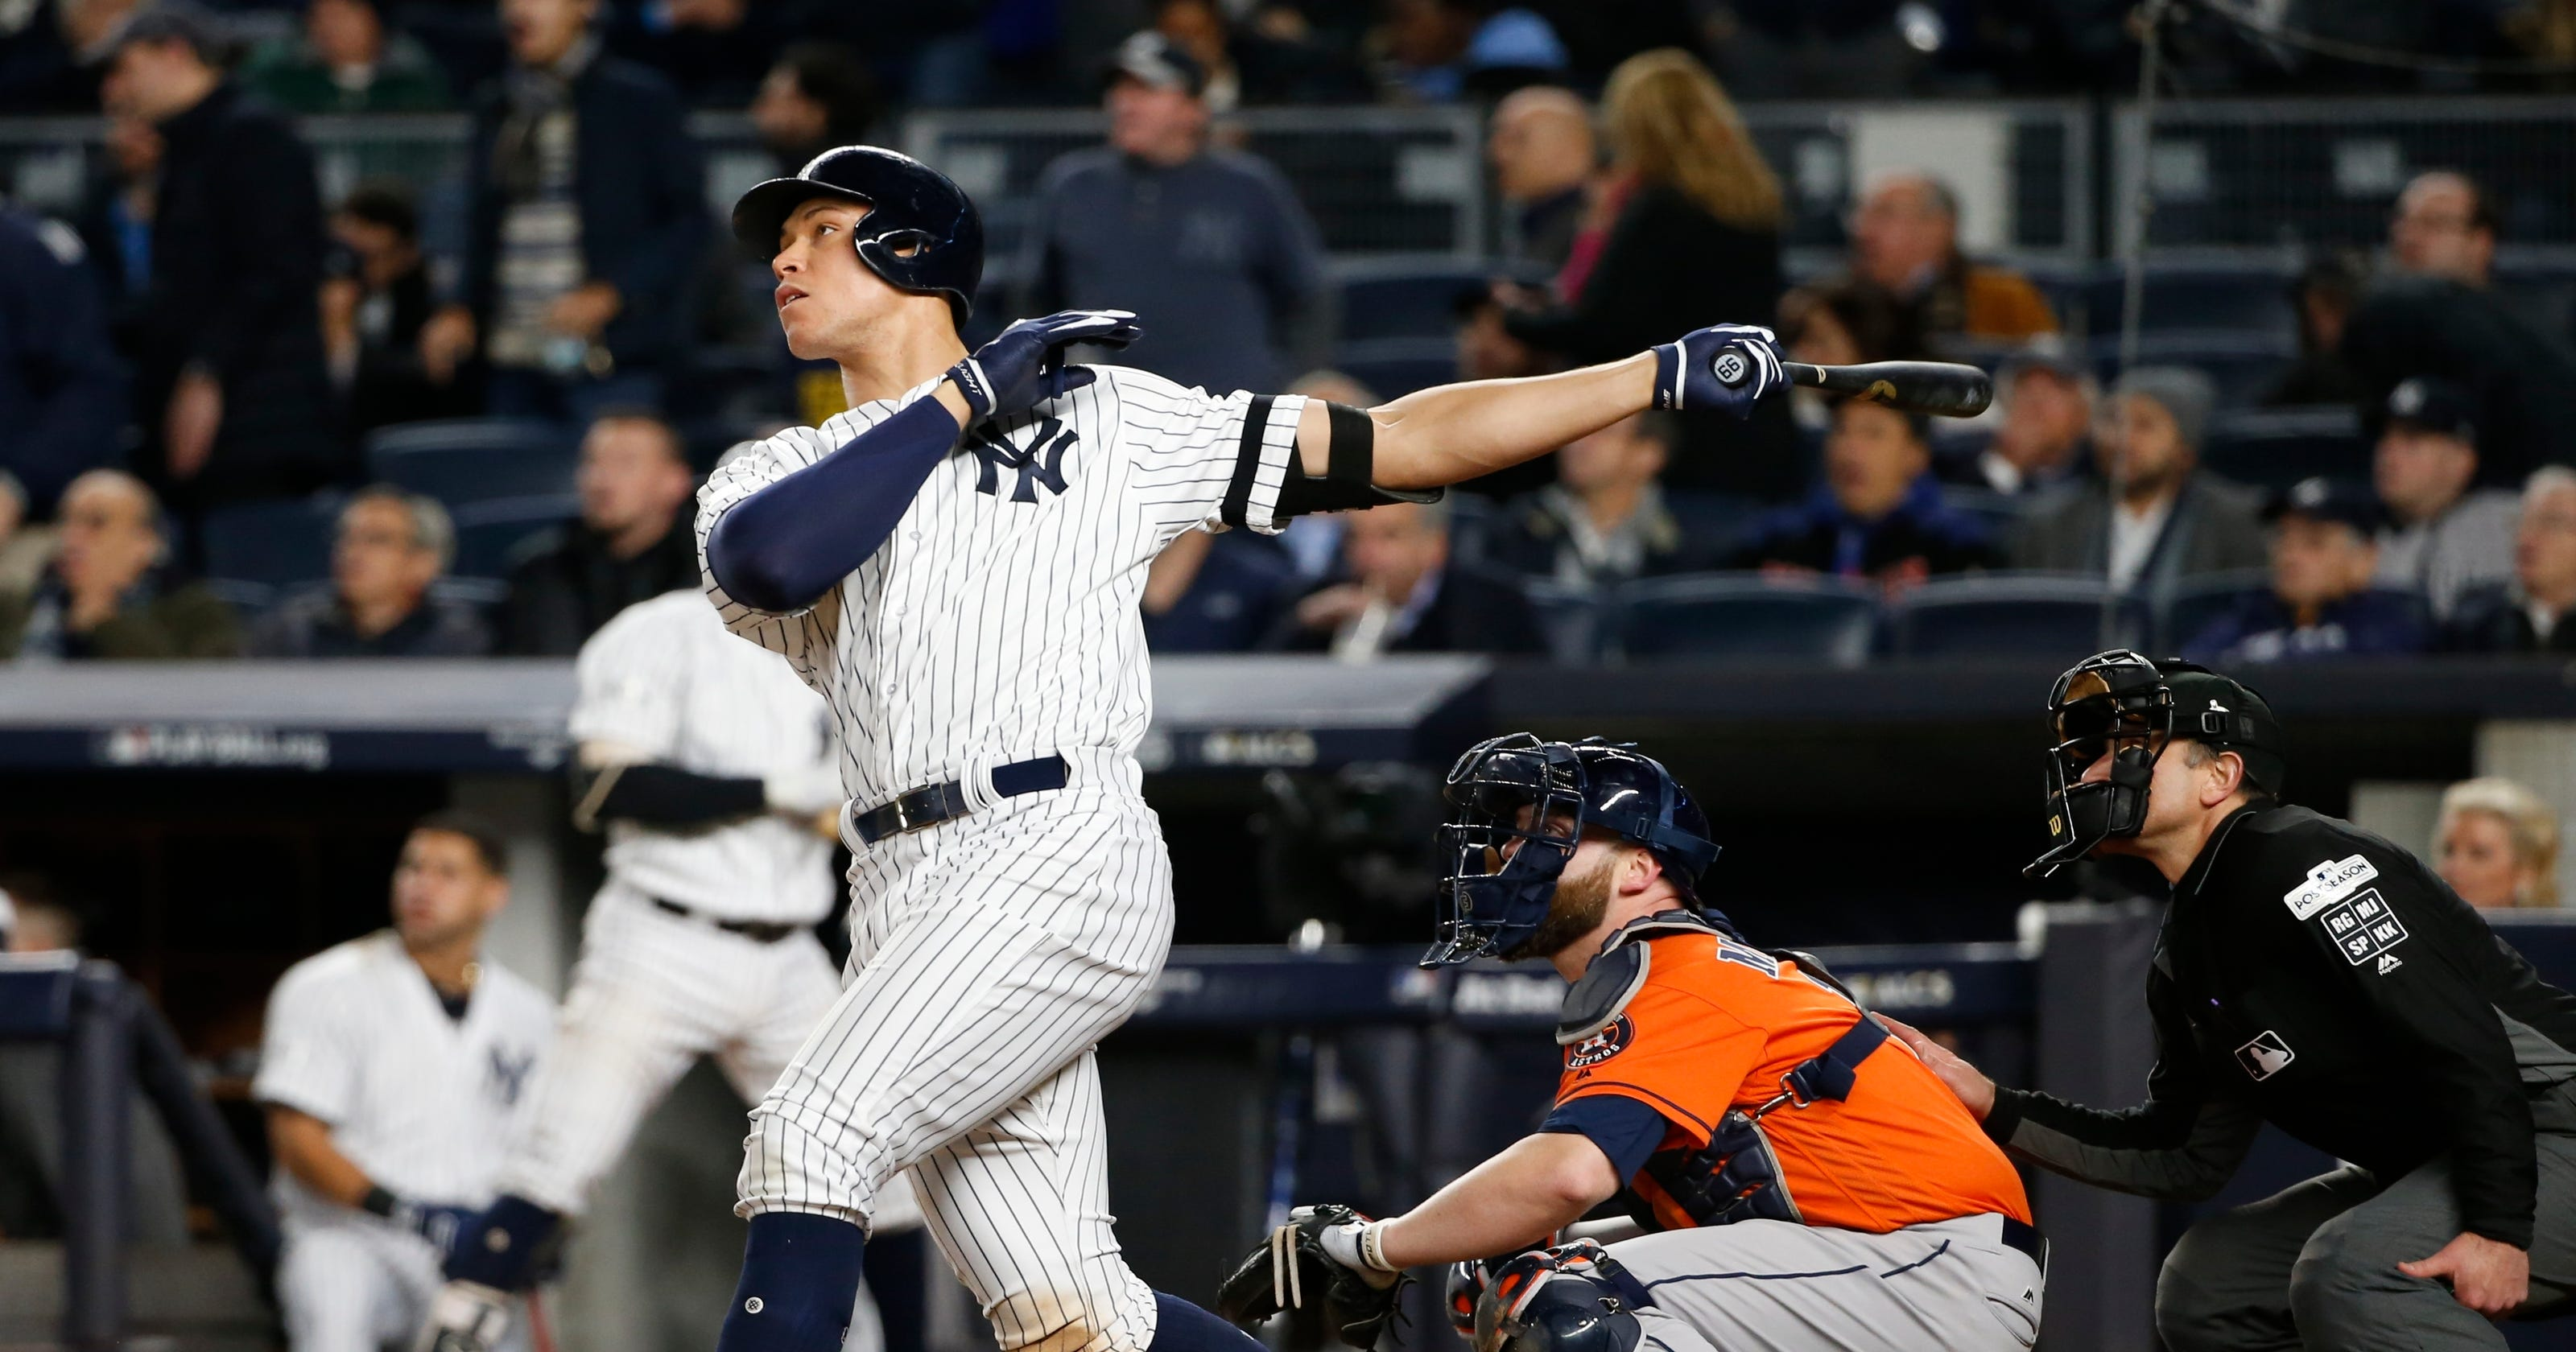 Yankees Aaron Judge Is No 1 In 2018 Topps Baseball Card Series